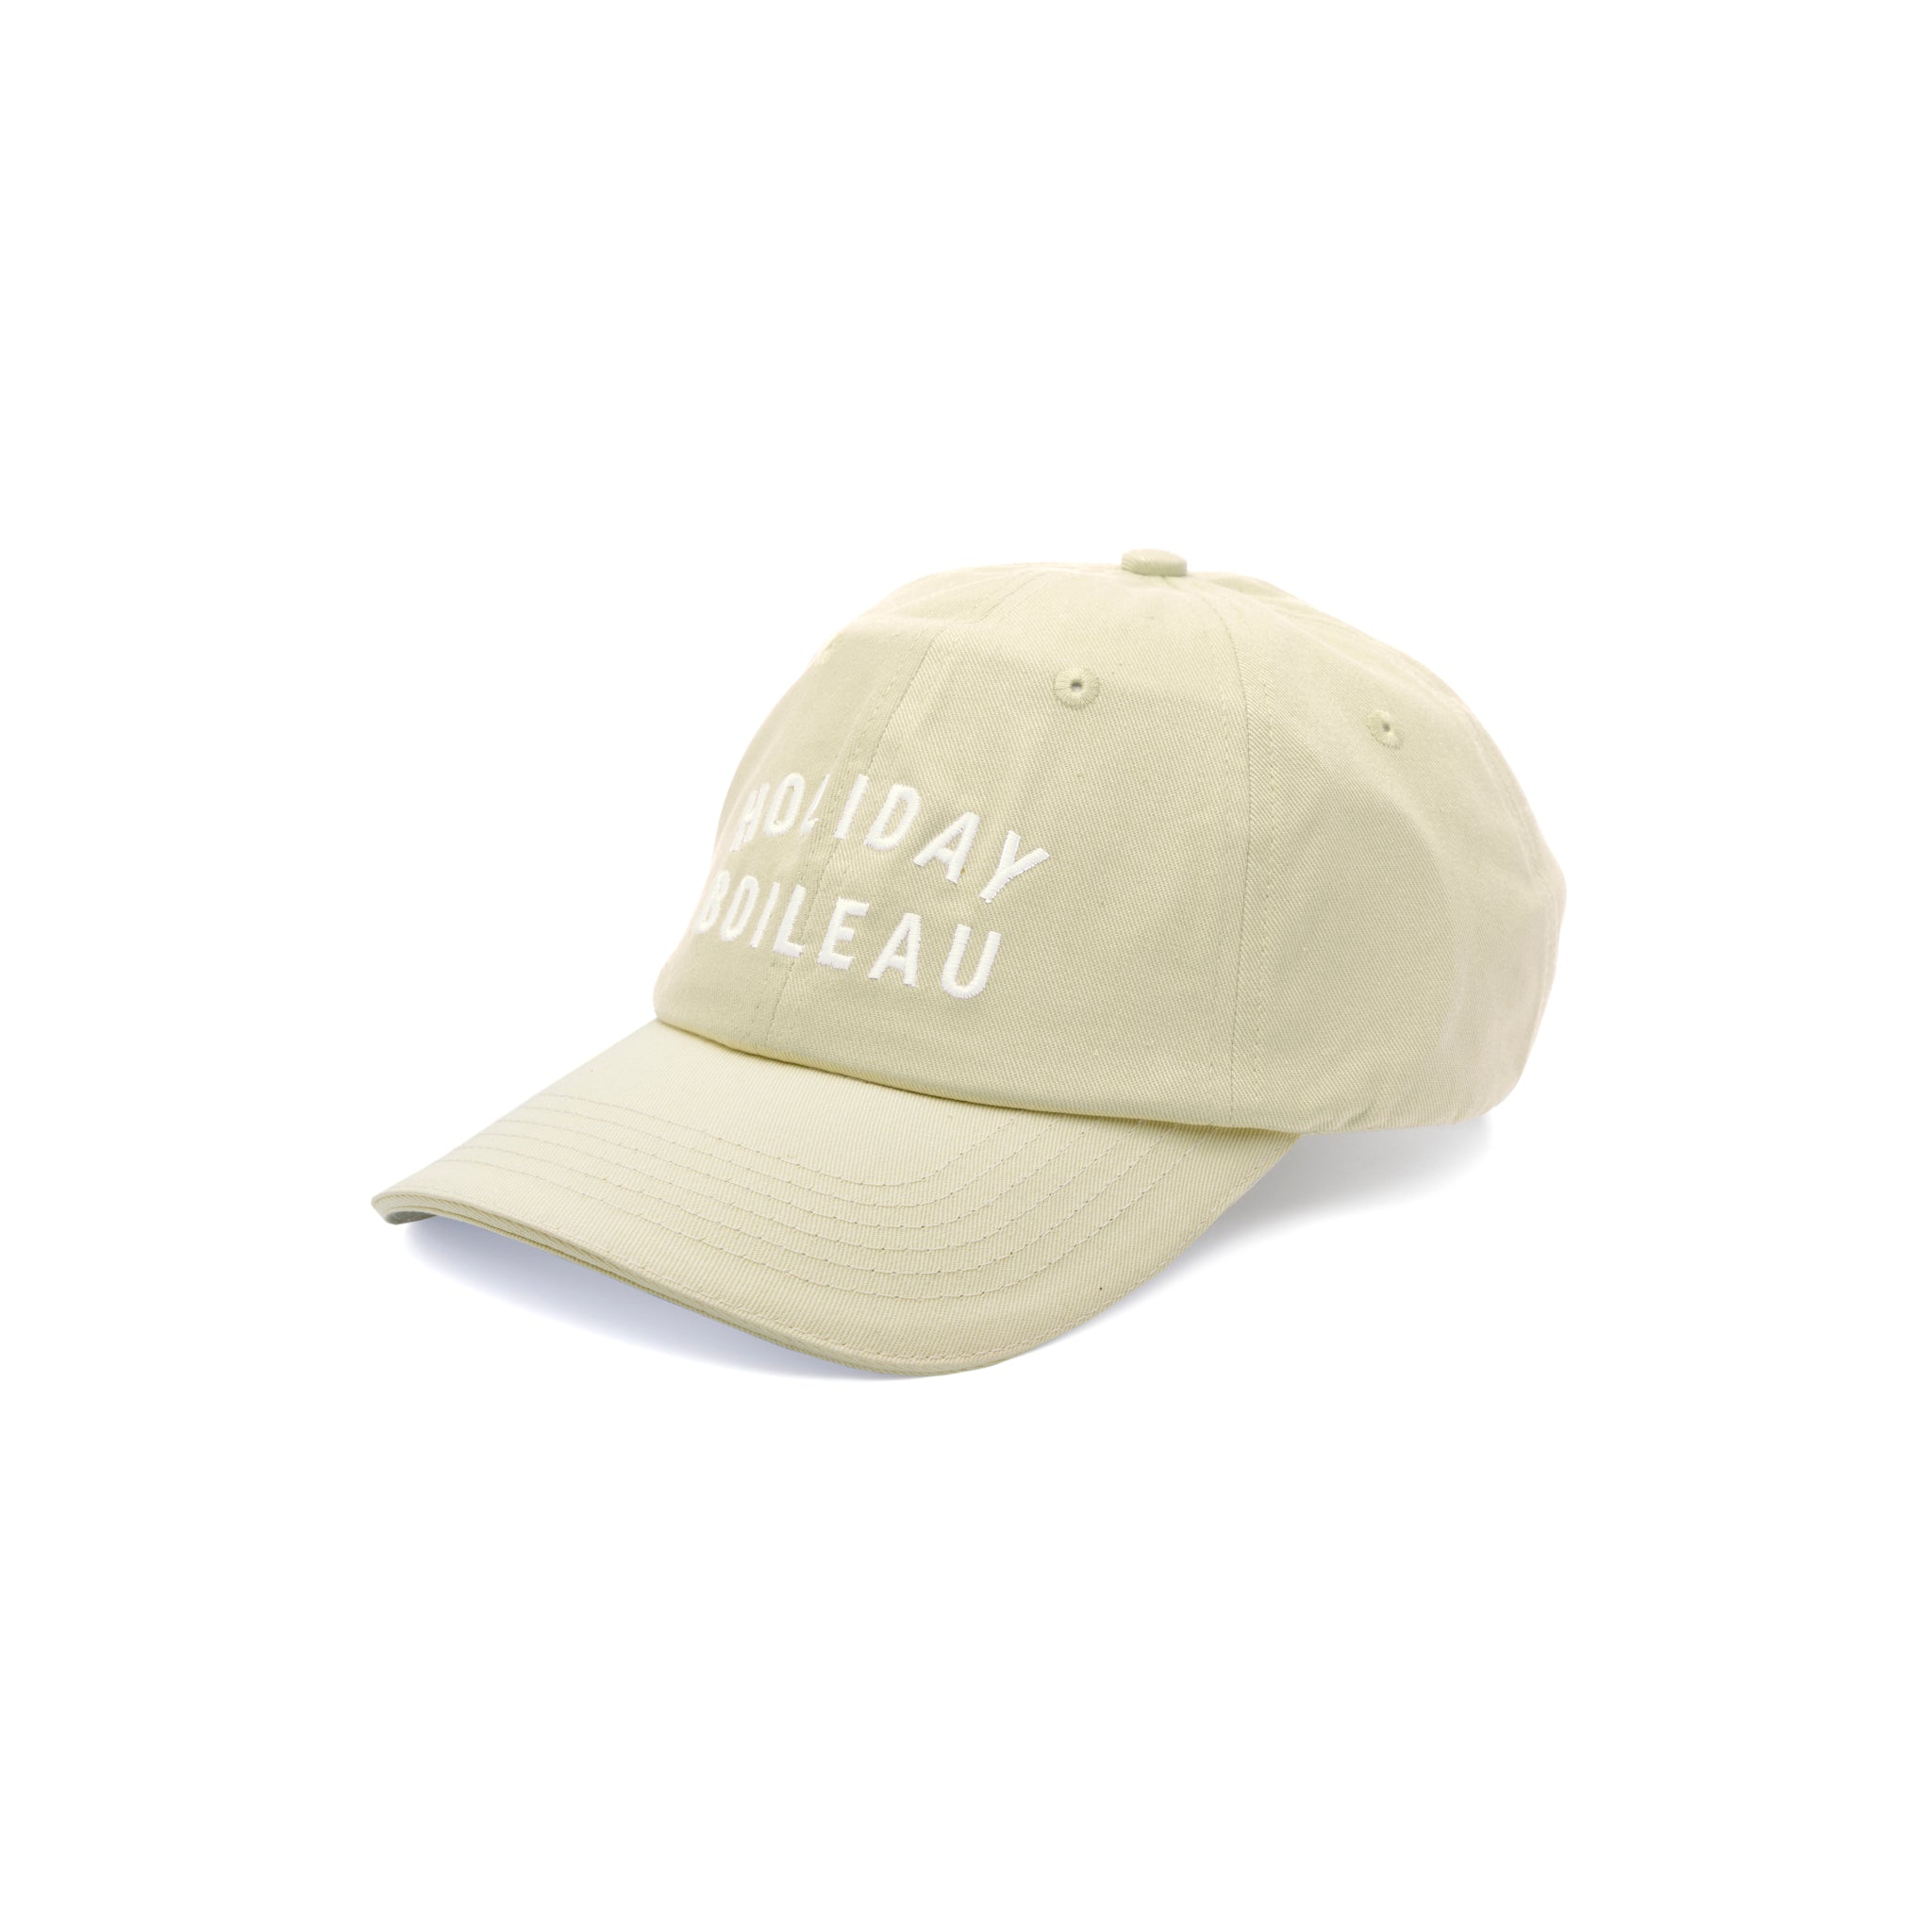 The Fun Pale Yellow Cap